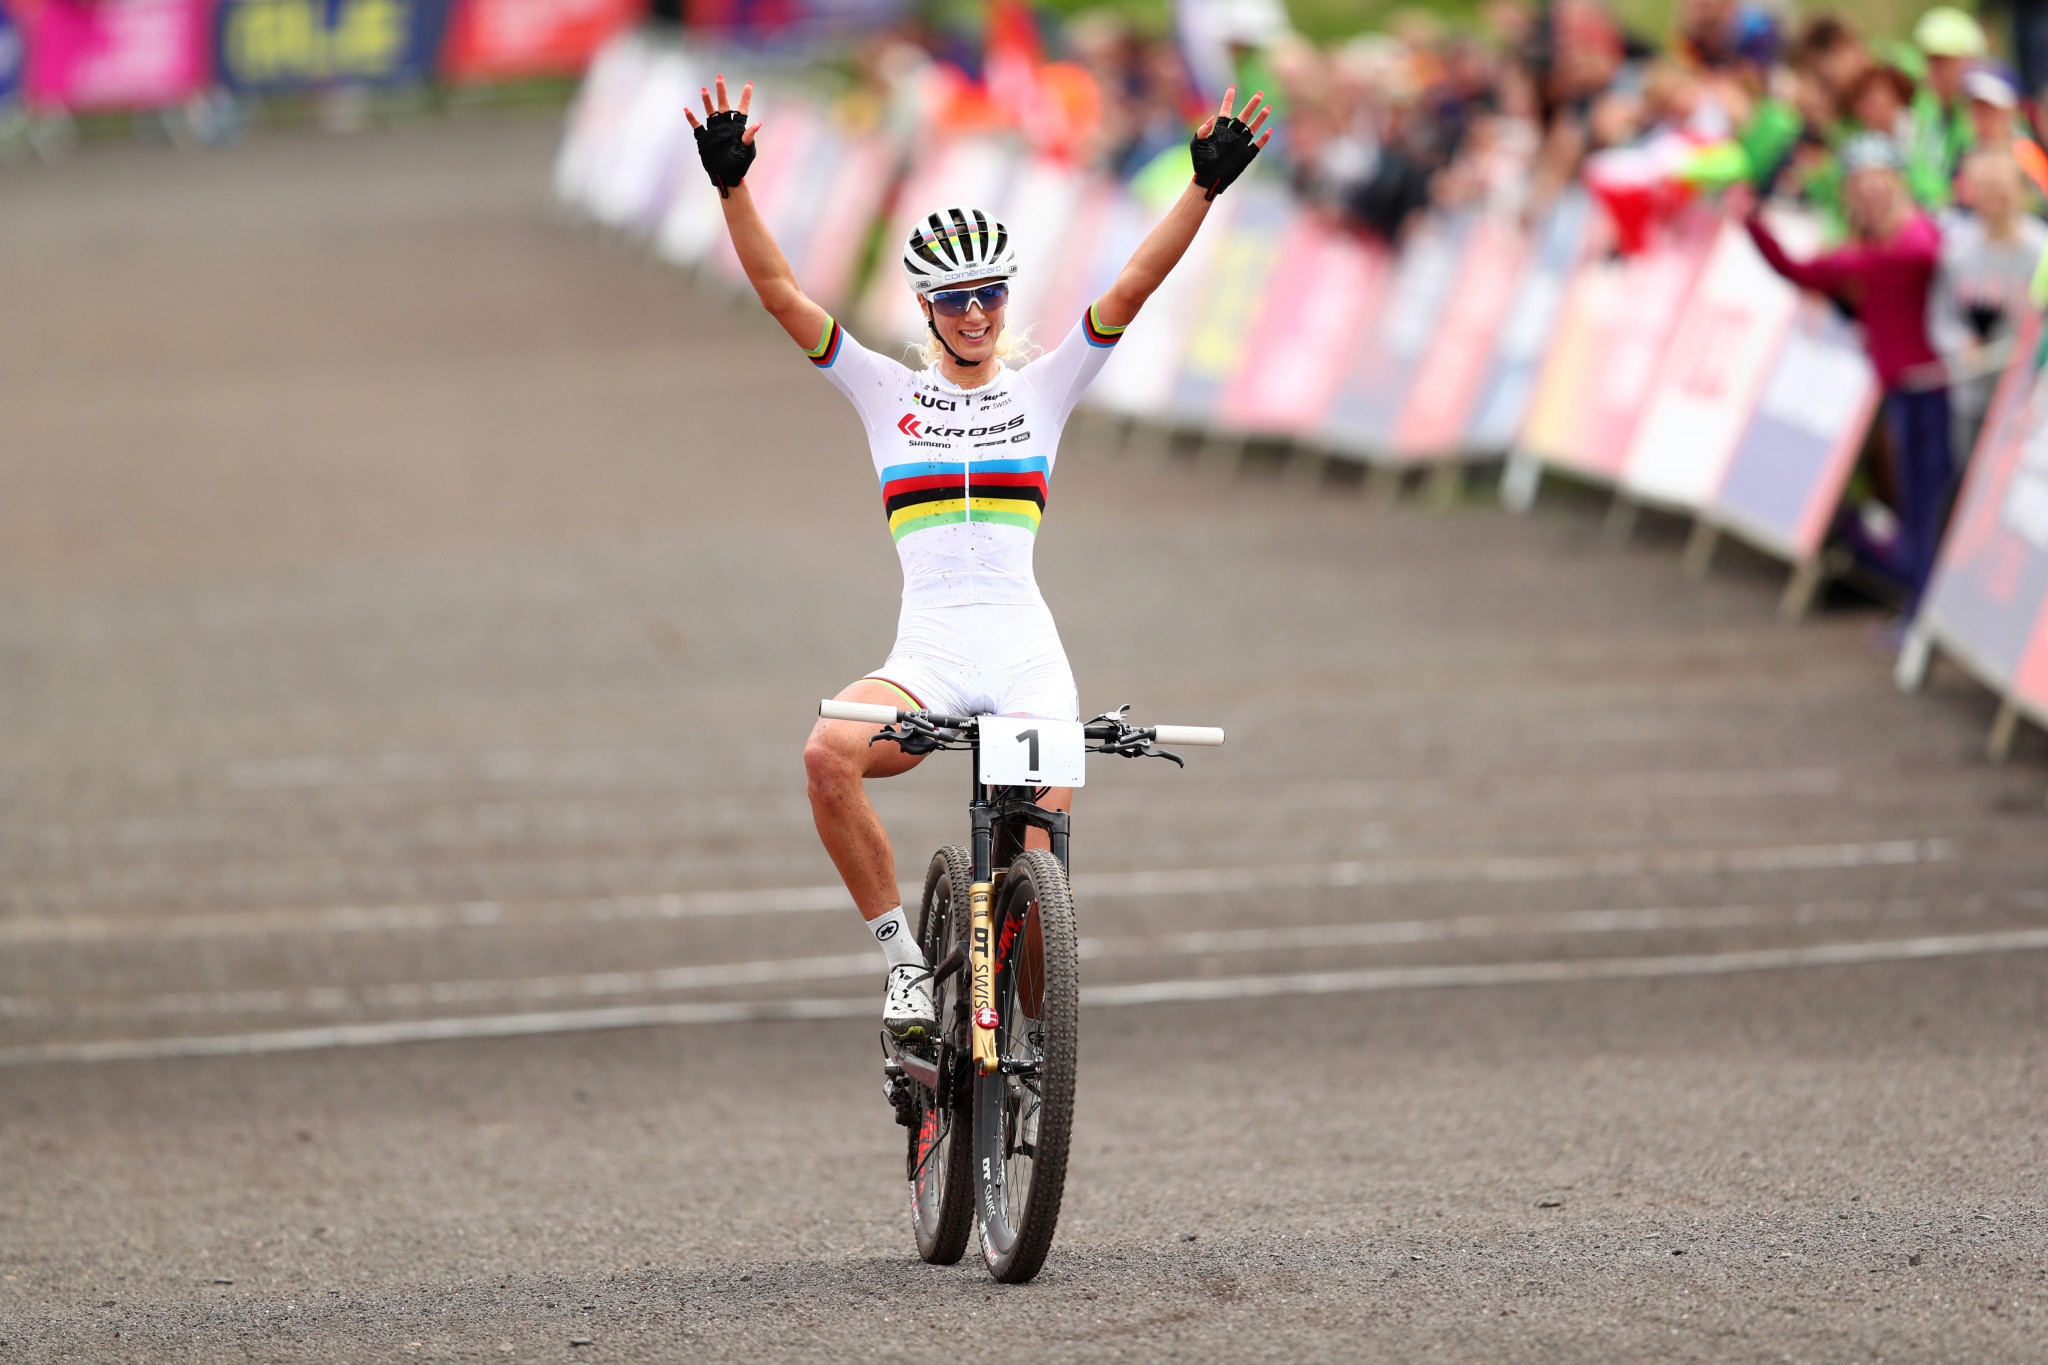 Jolanda Neff won gold for Switzerland in the women's mountain bike race at Cathkin Braes, which turned out to be the first of two Swiss triumphs in the hills ©Getty Images